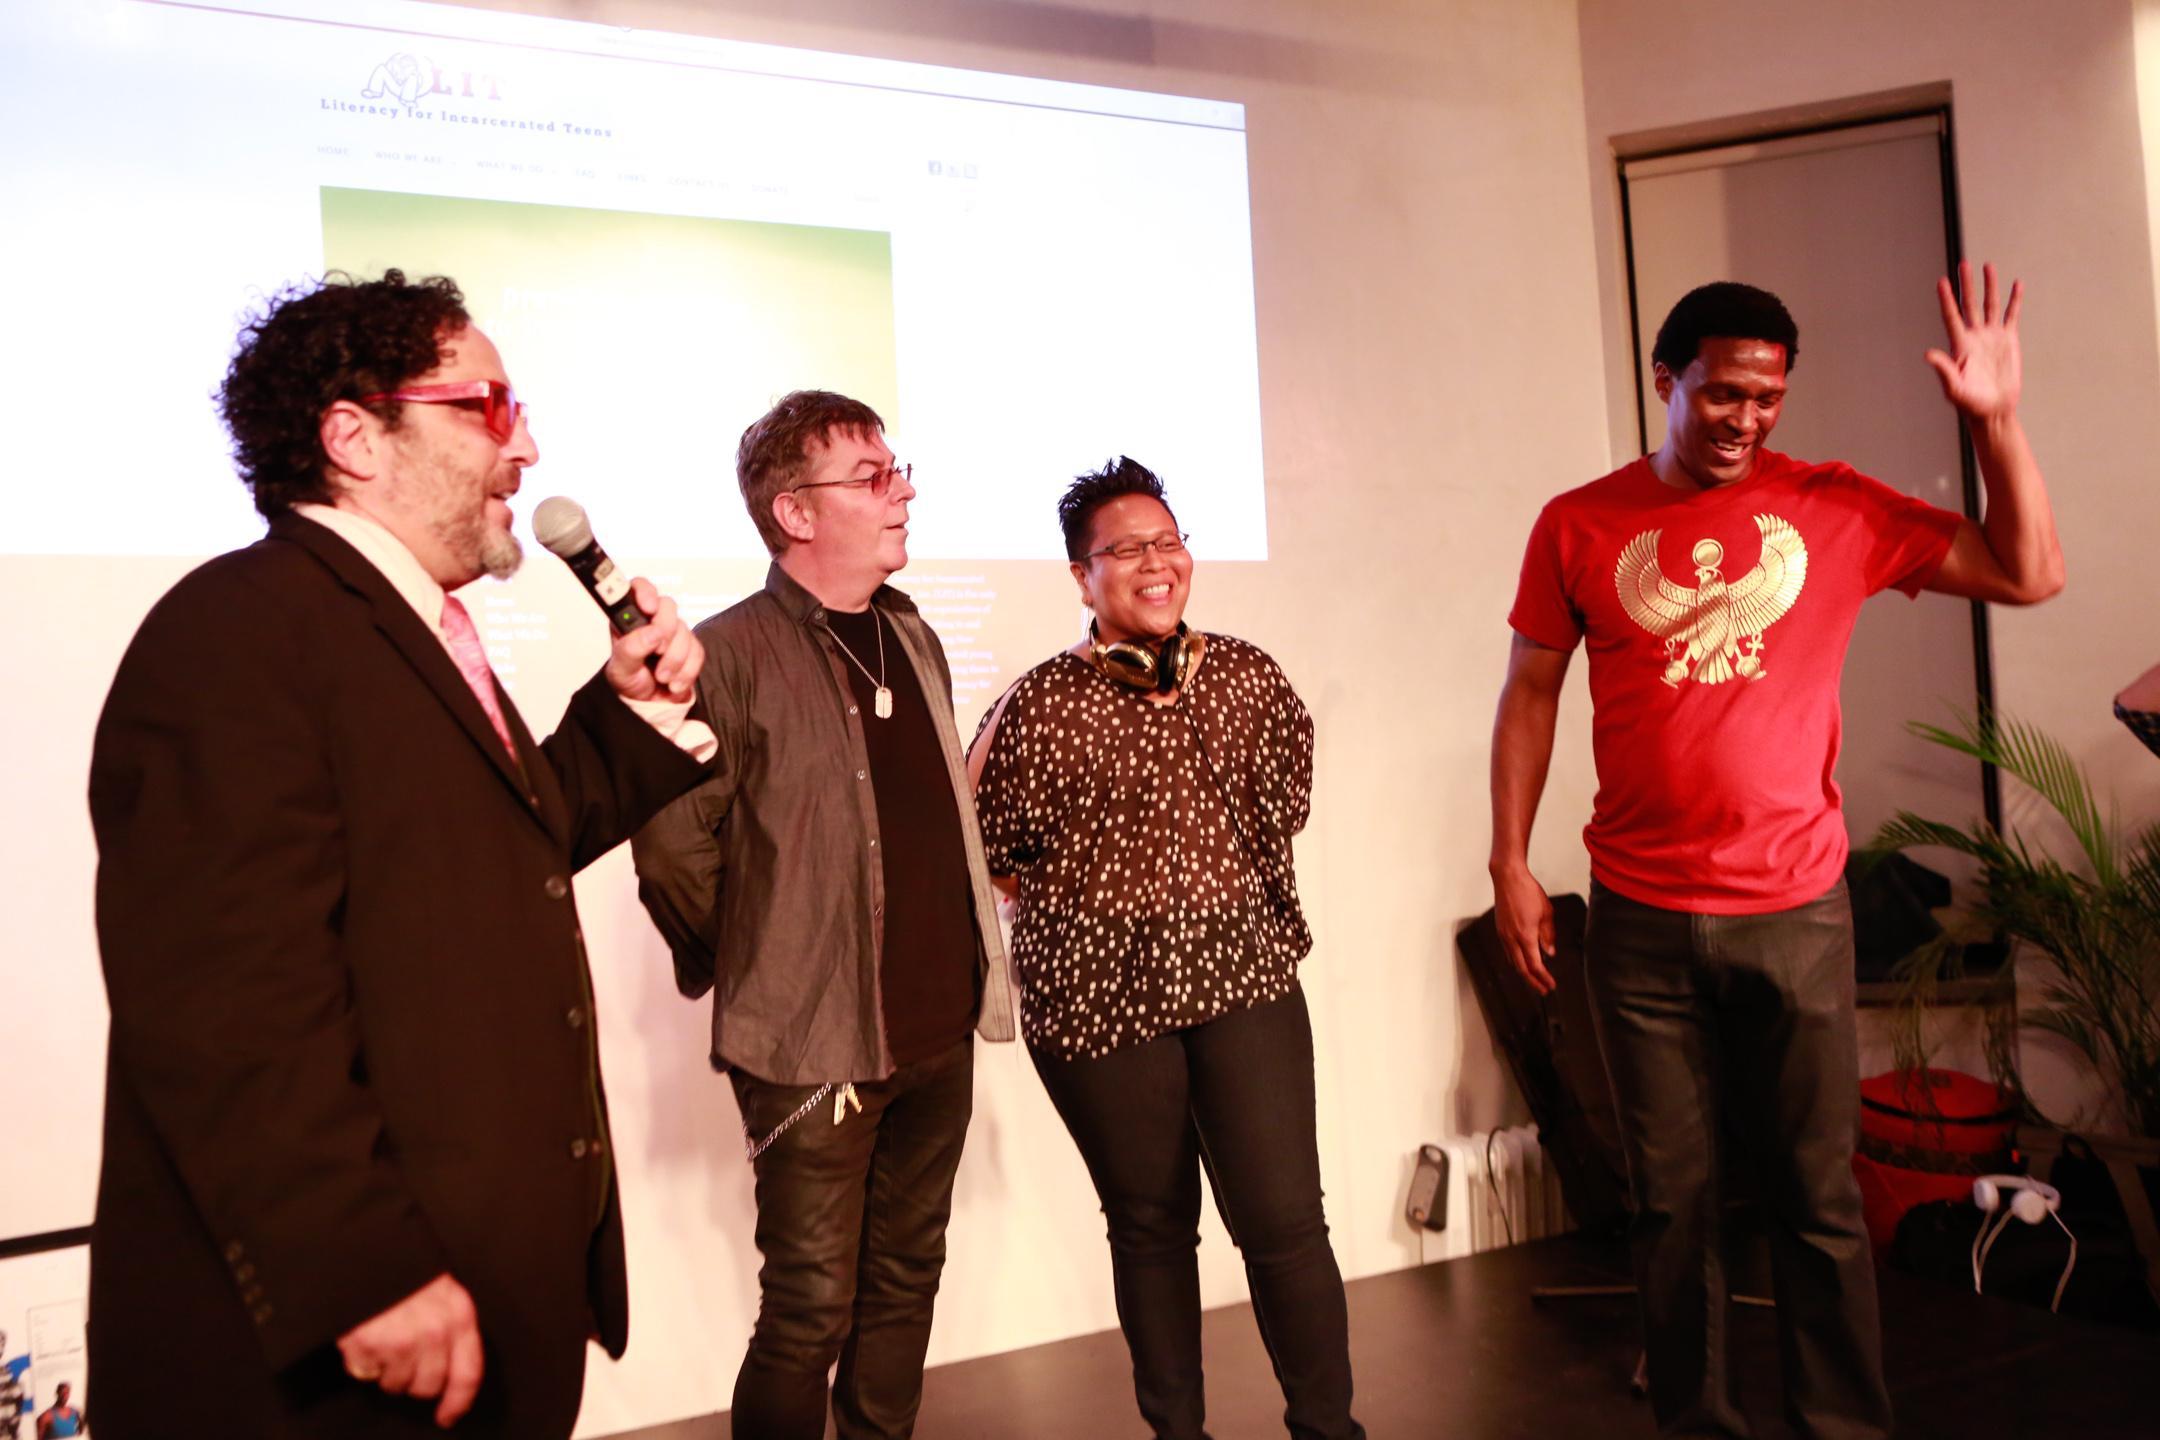 L-R: Robert Galinsky, Andy Rourke, DJ CherishTheLuv, Keith Shocklee (photo: Shaun Mader)